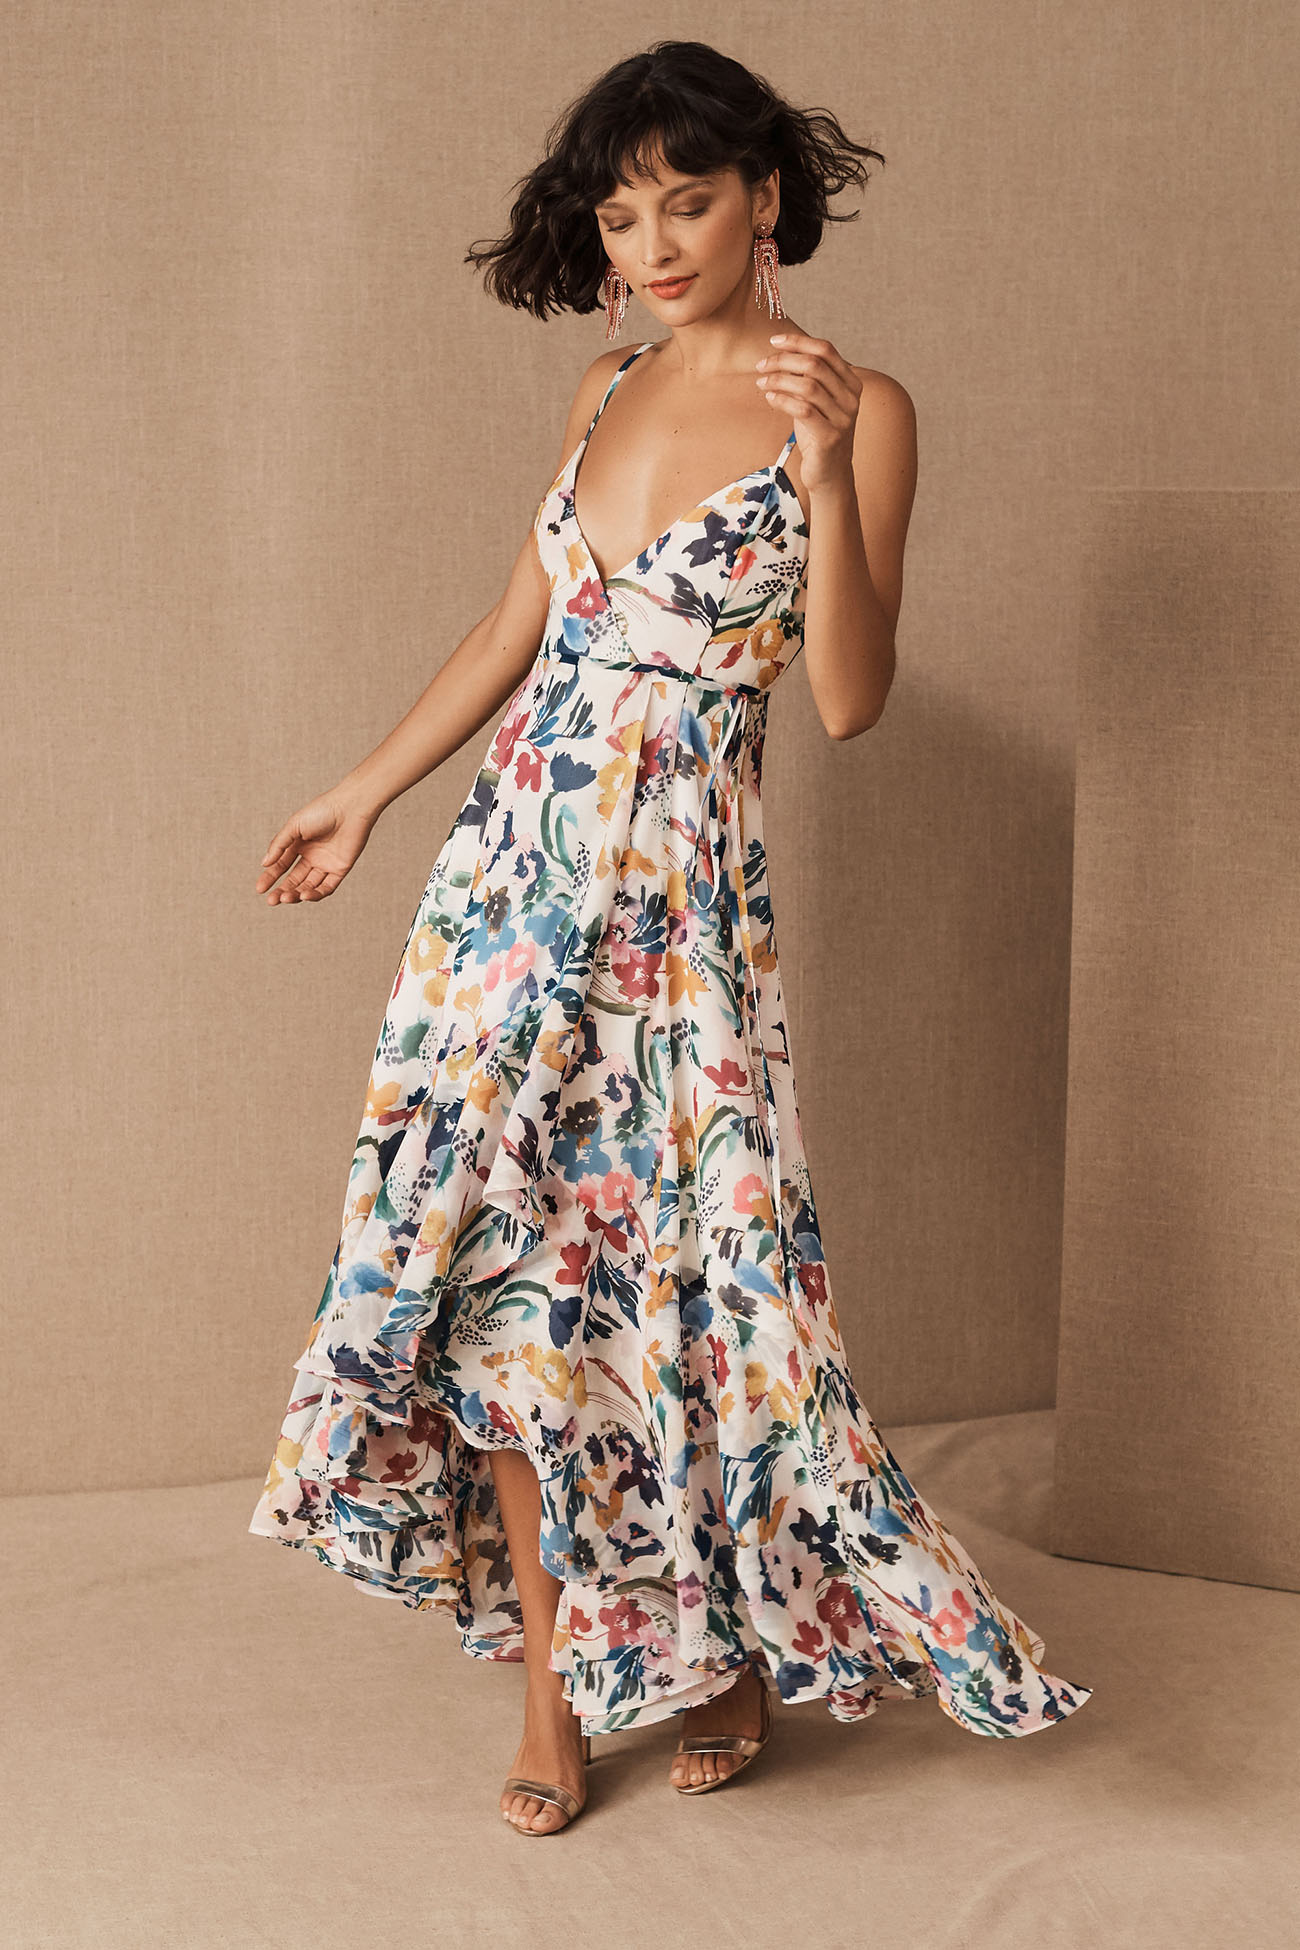 Spring Floral Bridesmaid Dress